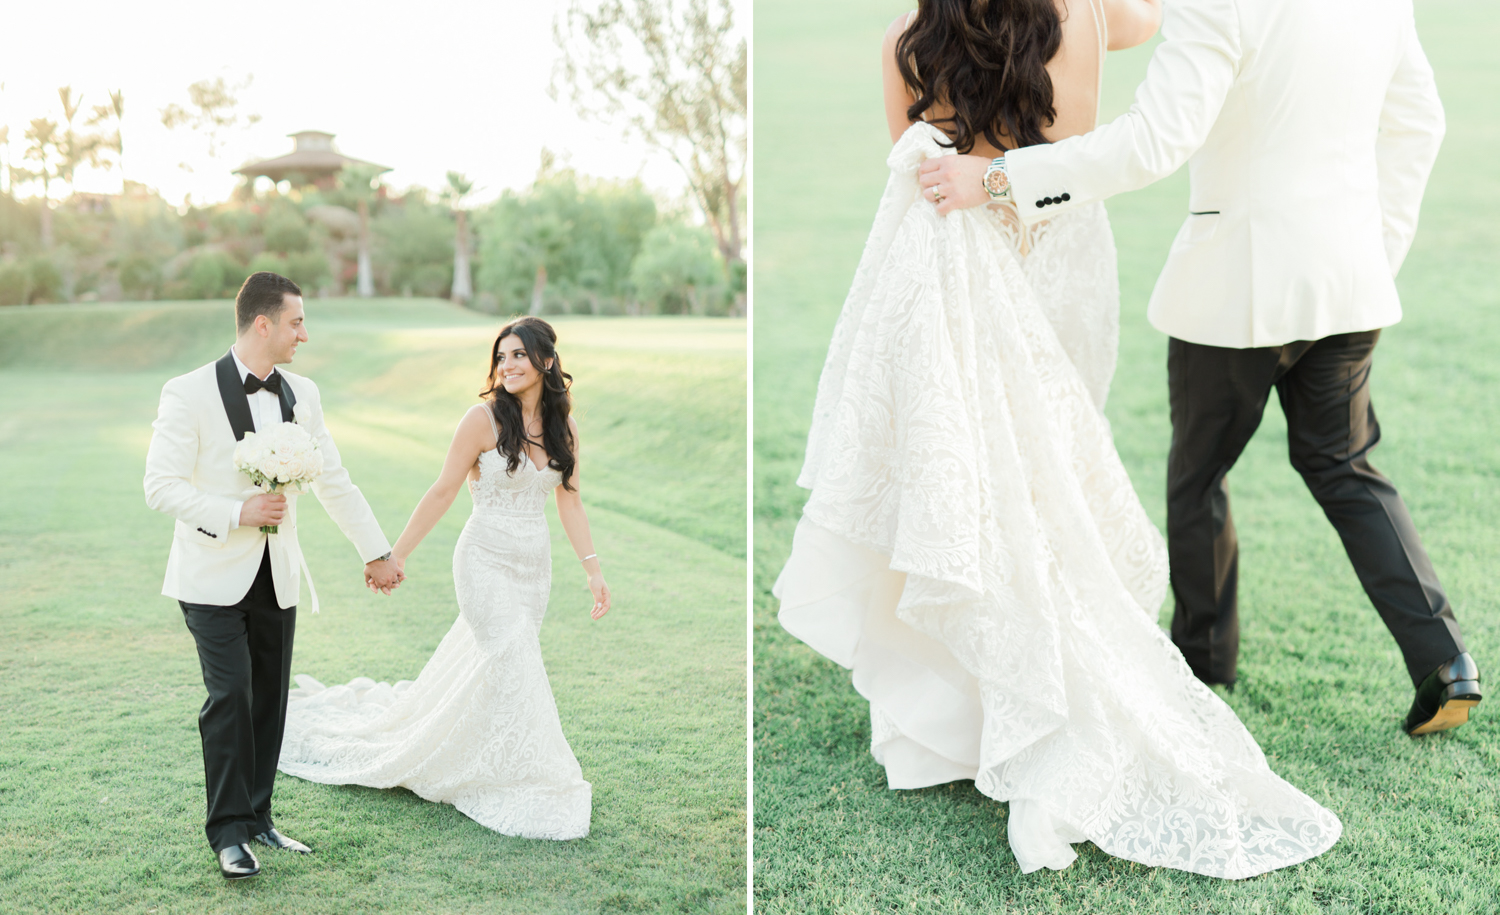 azer&michelle_hummingbird_nest_ranch_wedding_fine_art_photographer_los_angeles-36.jpg